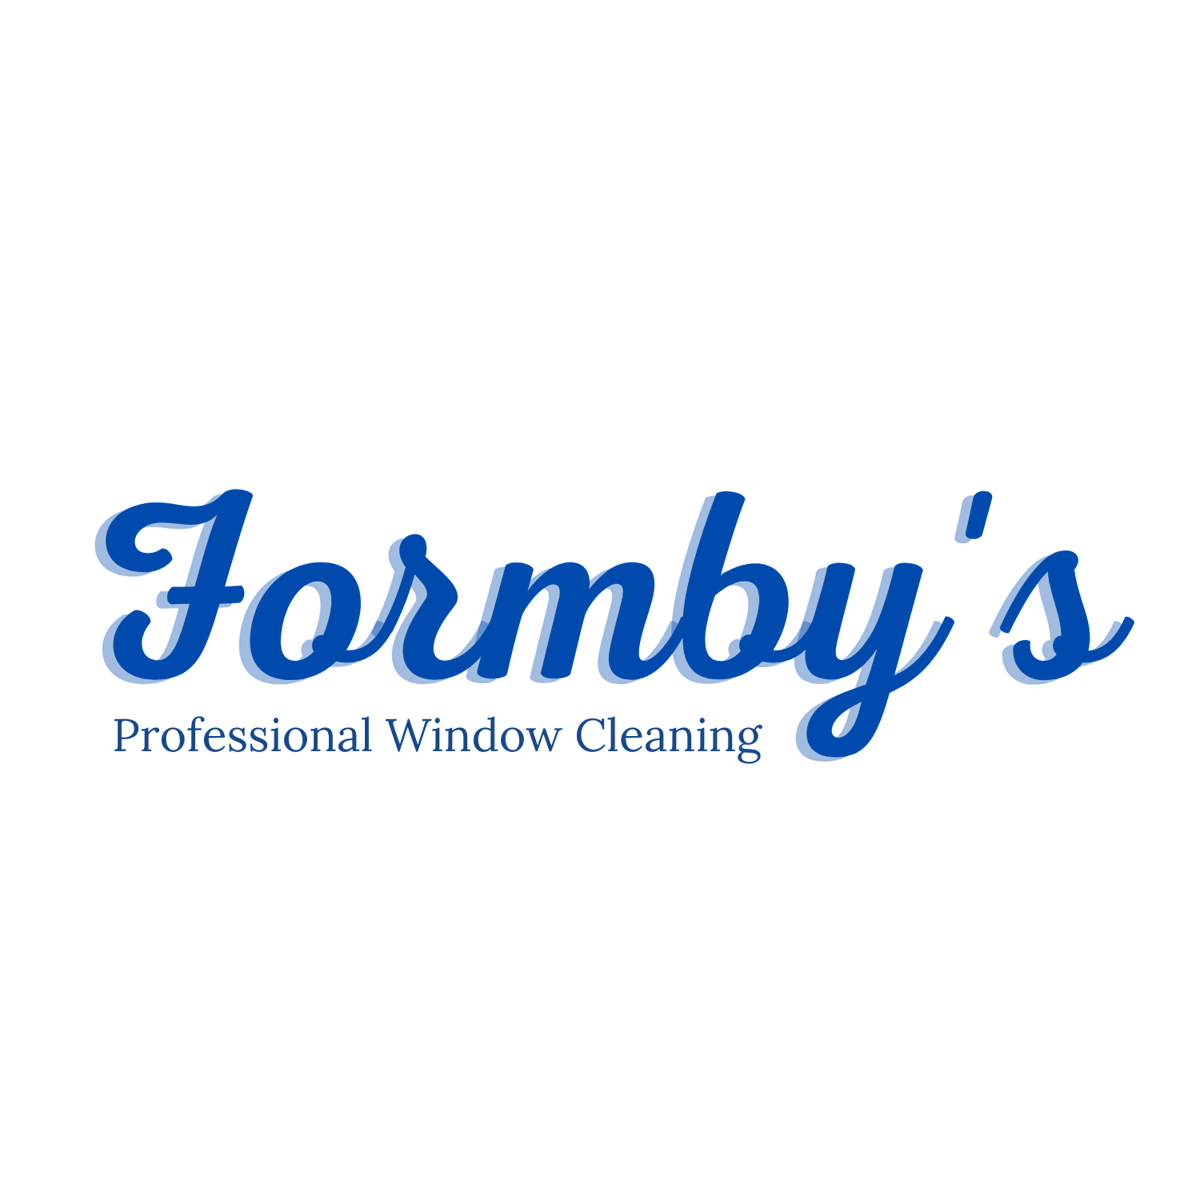 Formby's Window Cleaning